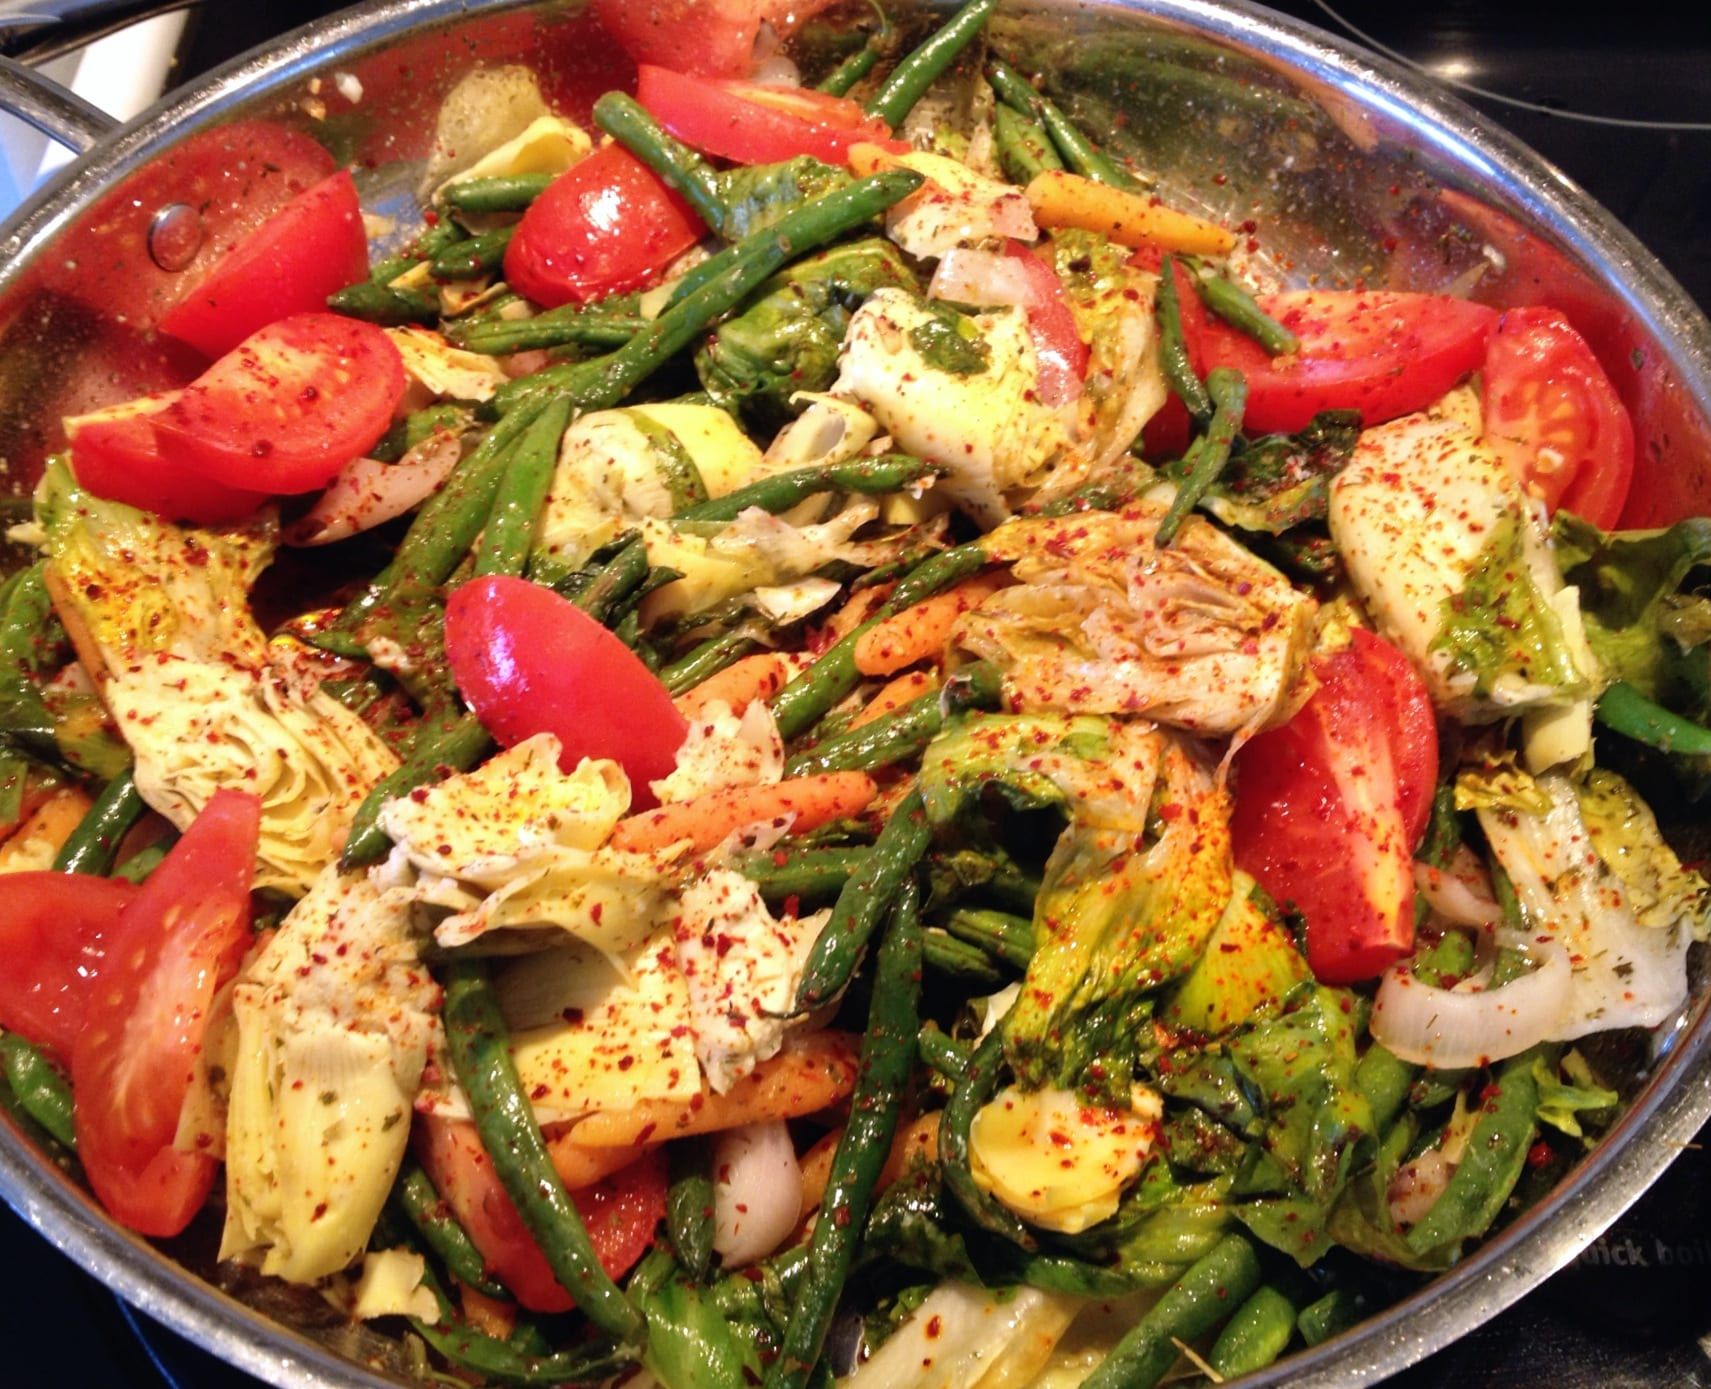 Spring Vegetable Stir Fry with escarole, shallots, green beans and artichokes